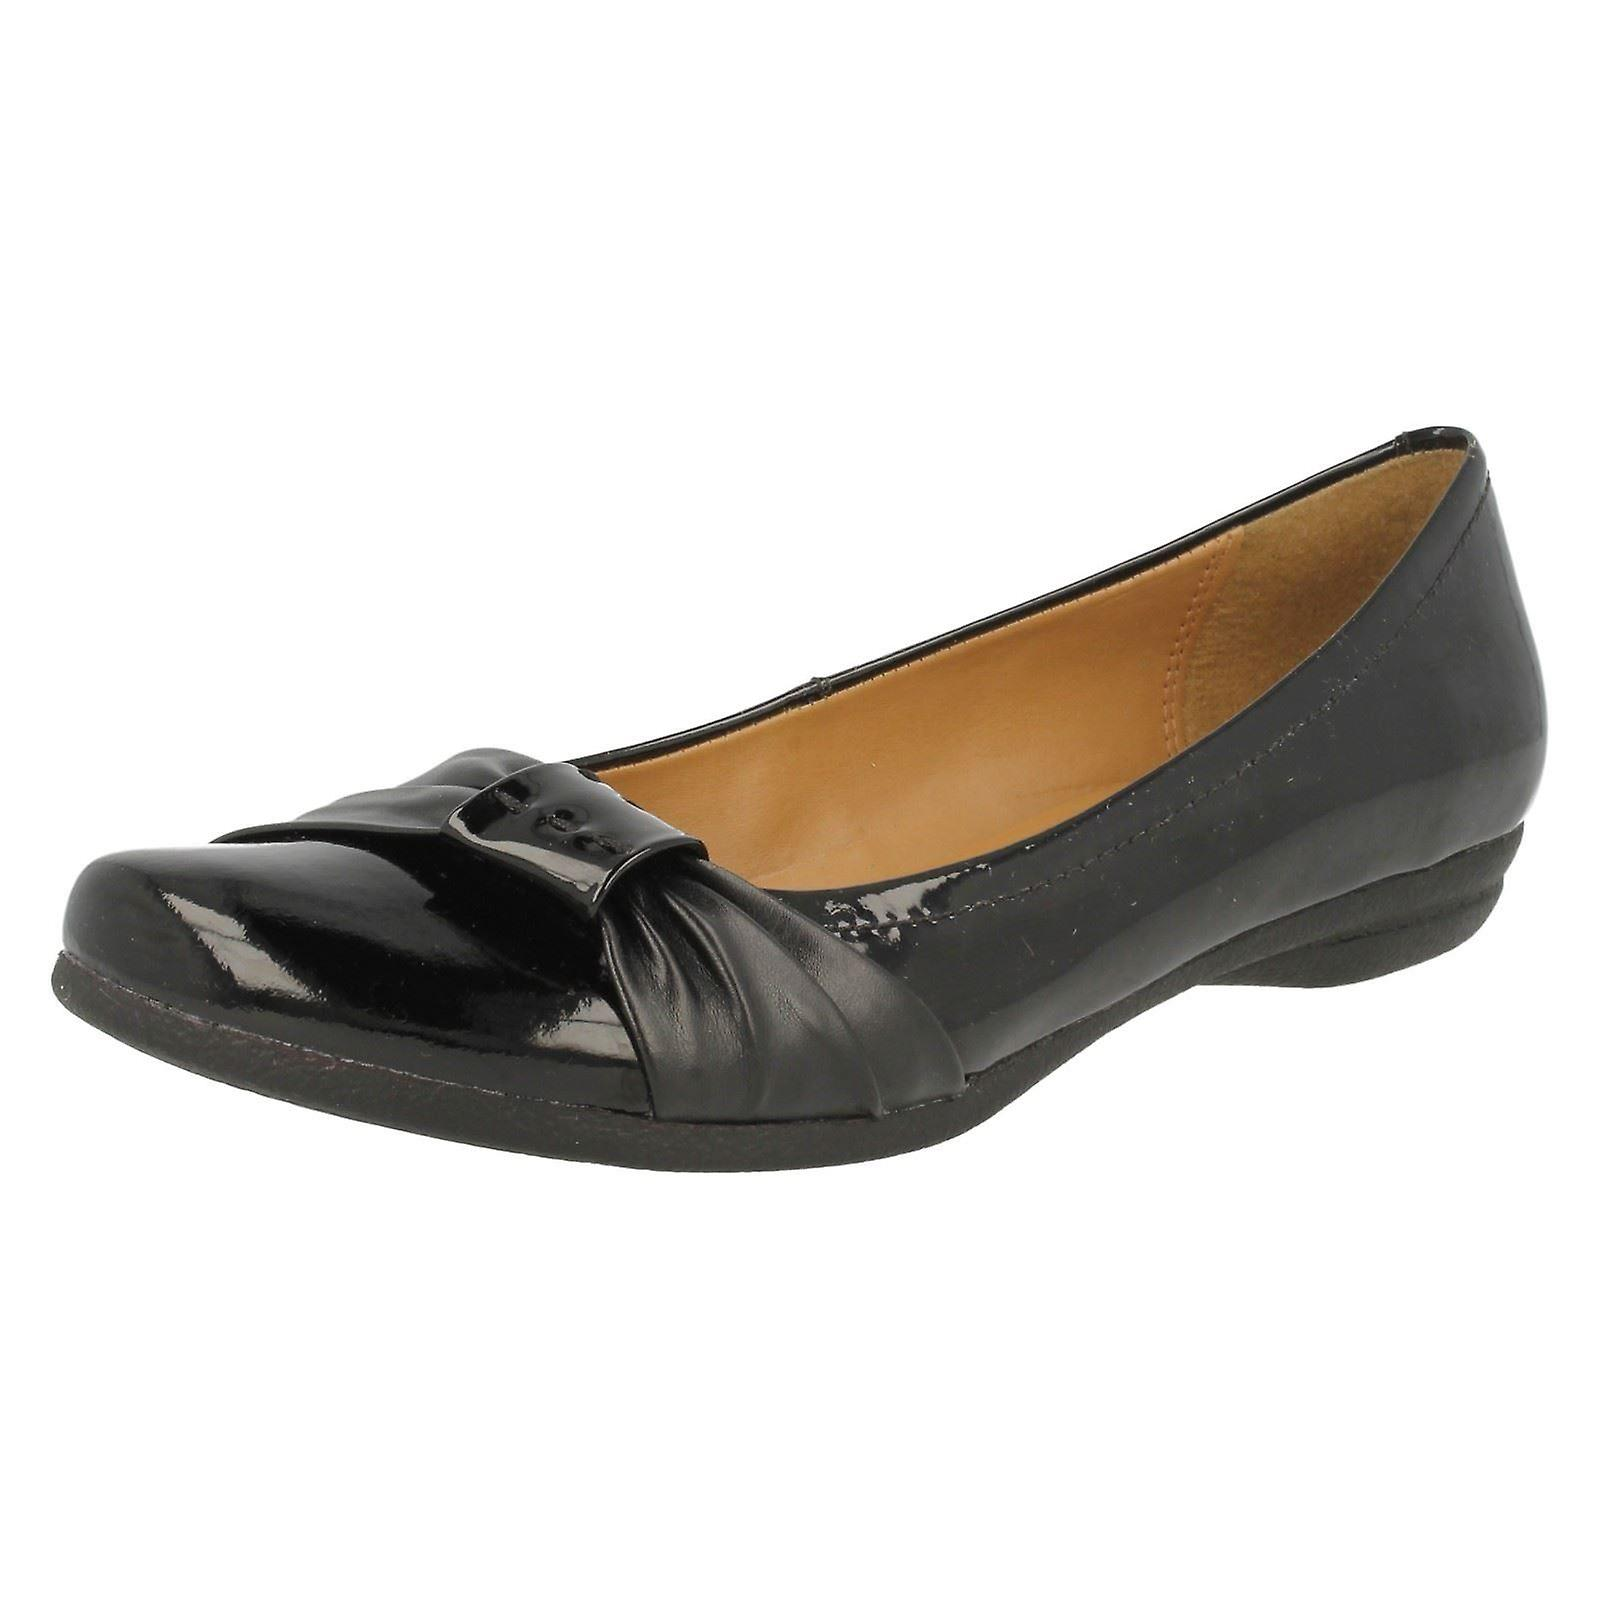 Ladies Clarks Leather Shoes Discovery Bay gF0Hg